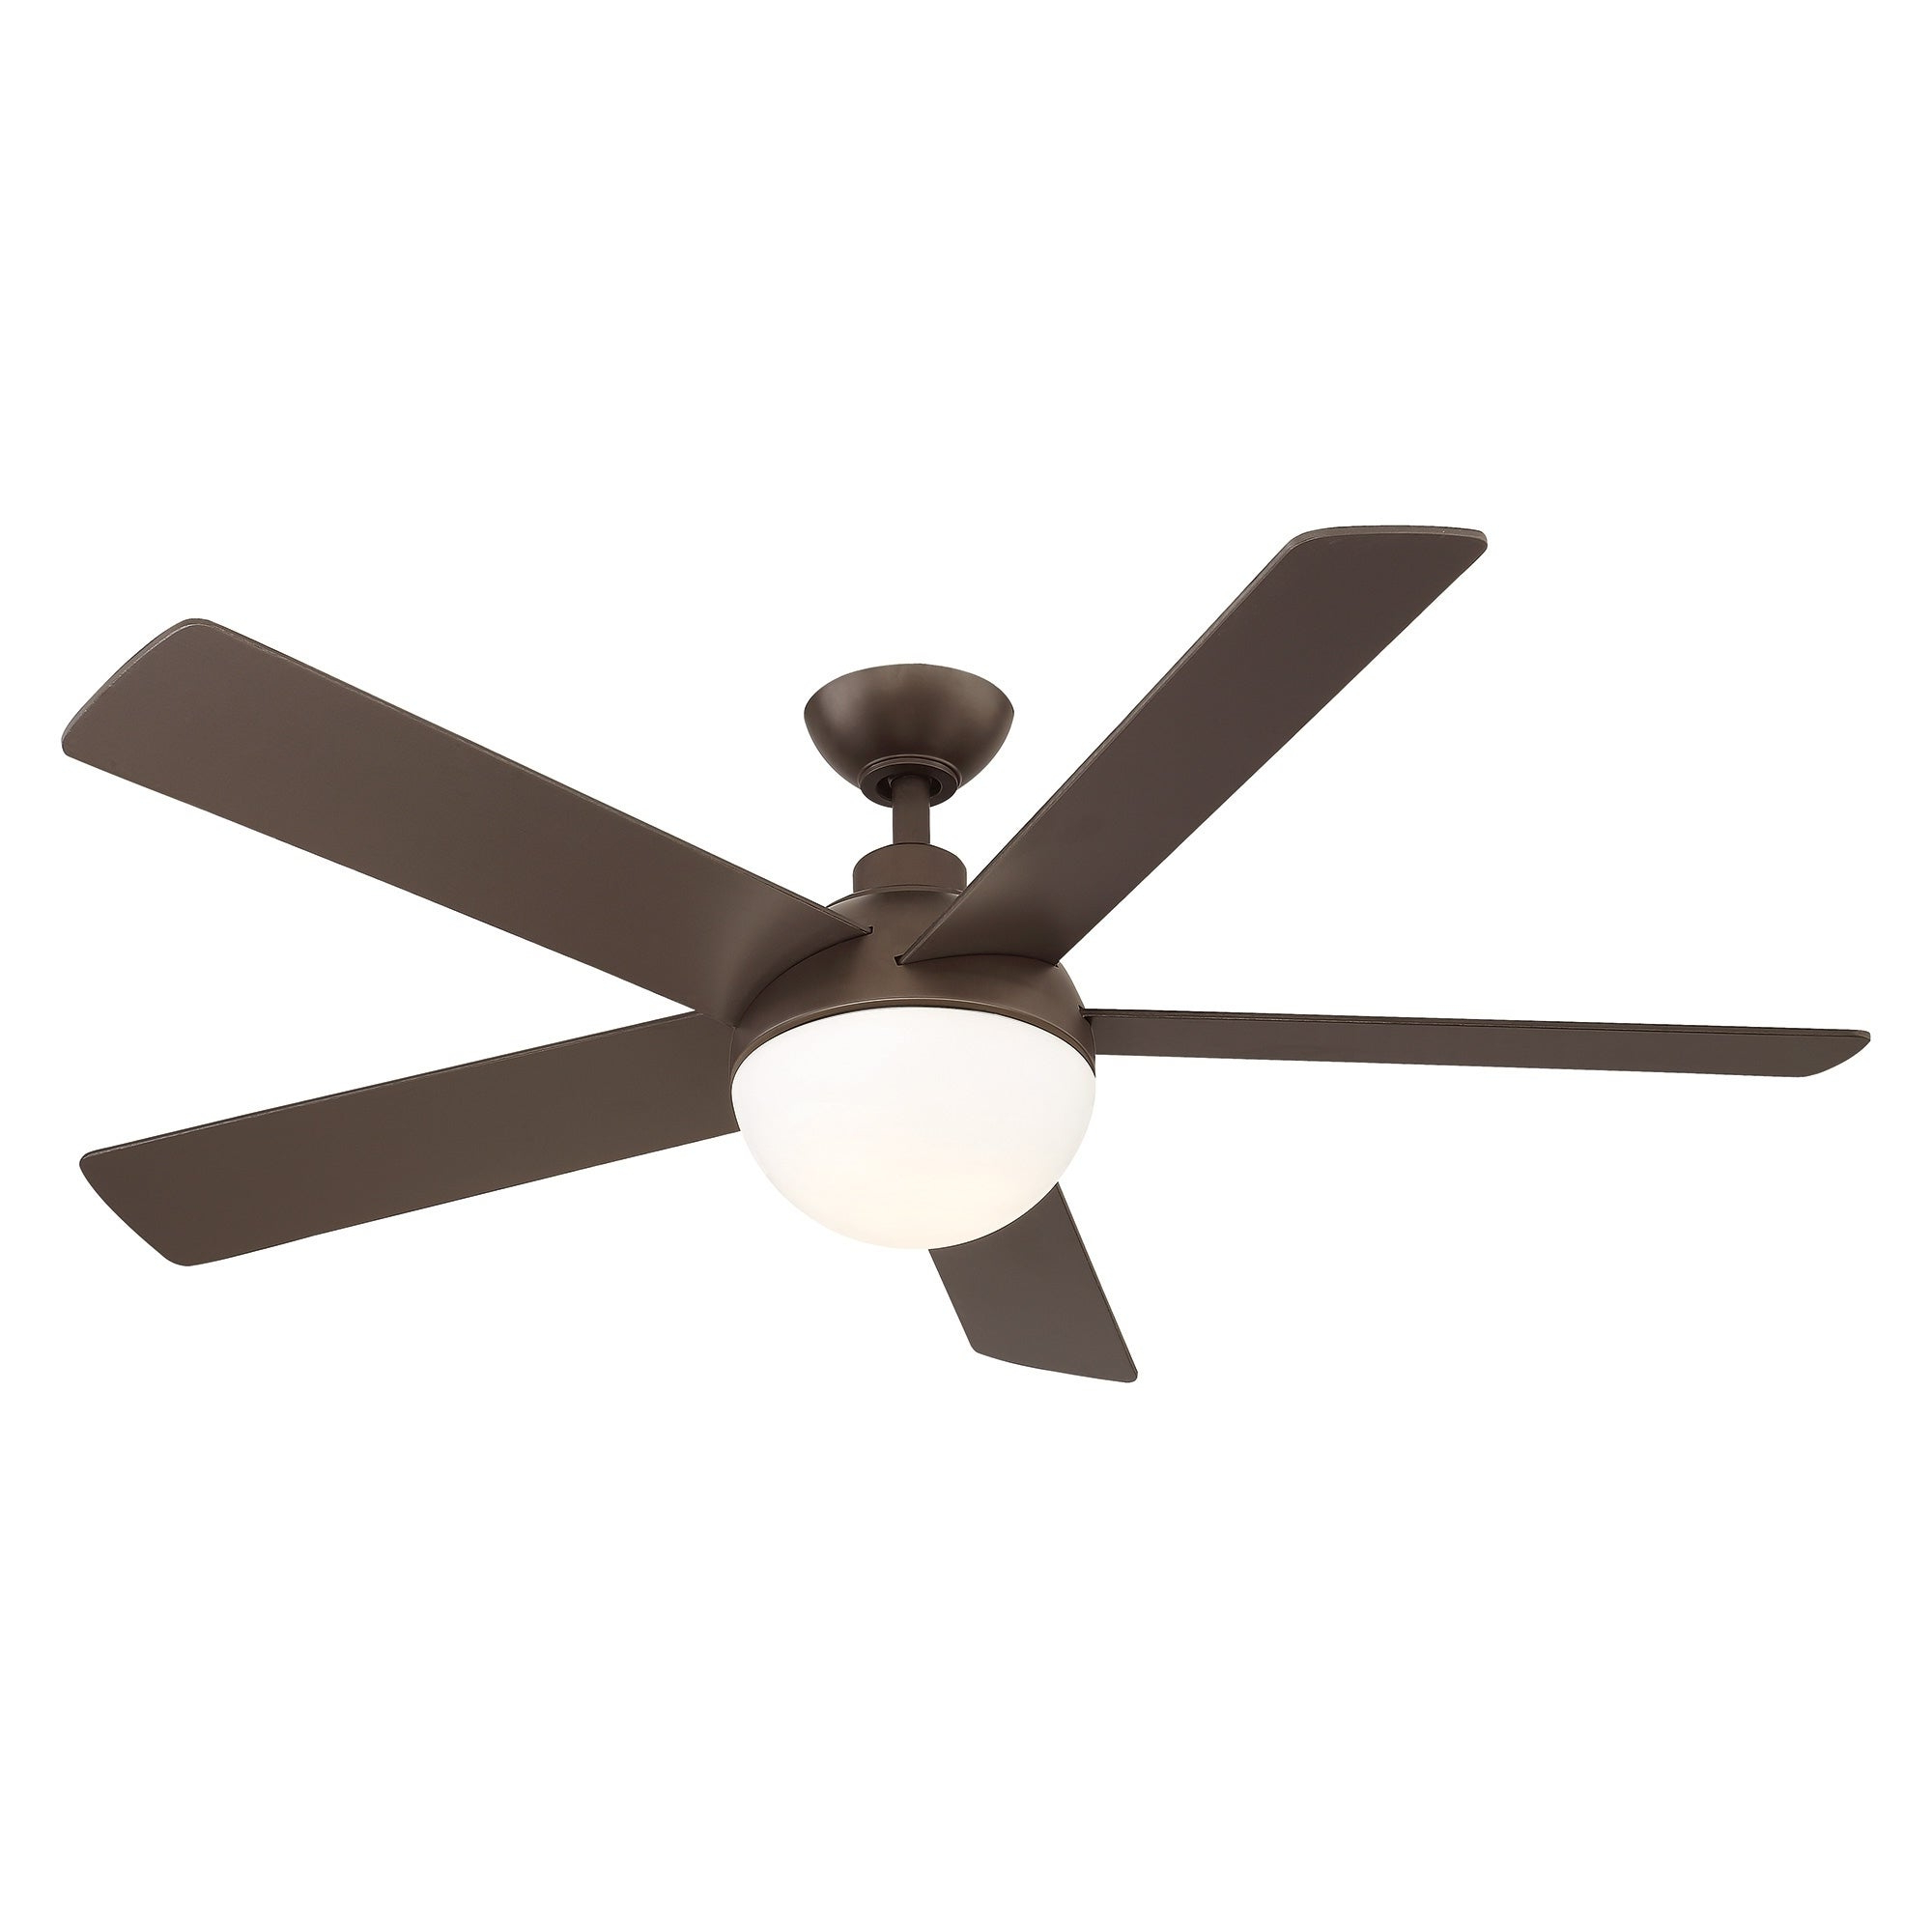 Eglo Tulum 52 Inch 5 Blade Ceiling Fan W/ Bronze Finish & Integrated Led Light Kit Pertaining To Most Popular Ratcliffe 5 Blade Led Ceiling Fans (View 14 of 20)